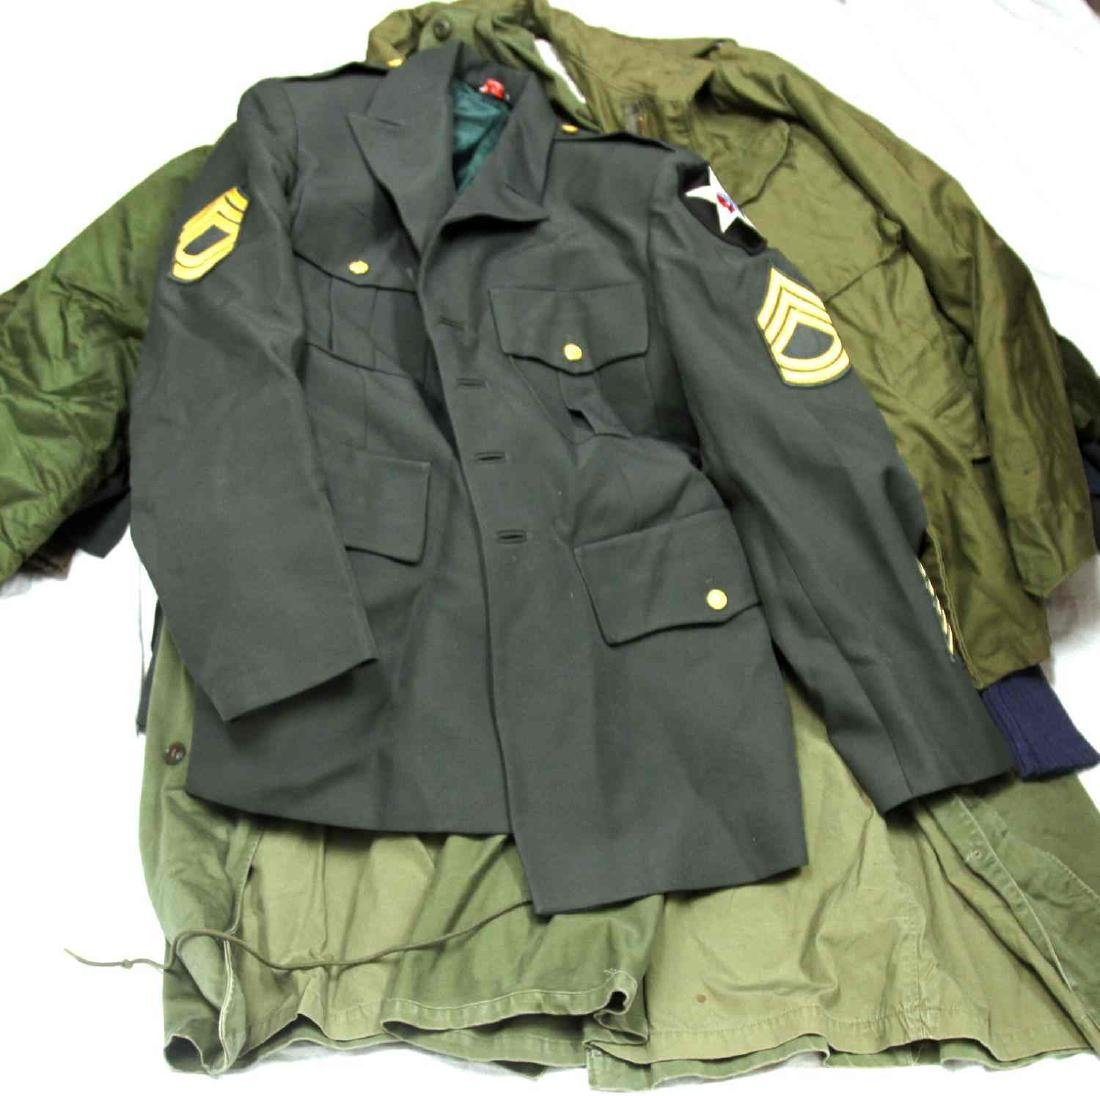 ASSORTED US MILITARY CLOTHING & UNIFORM LOT